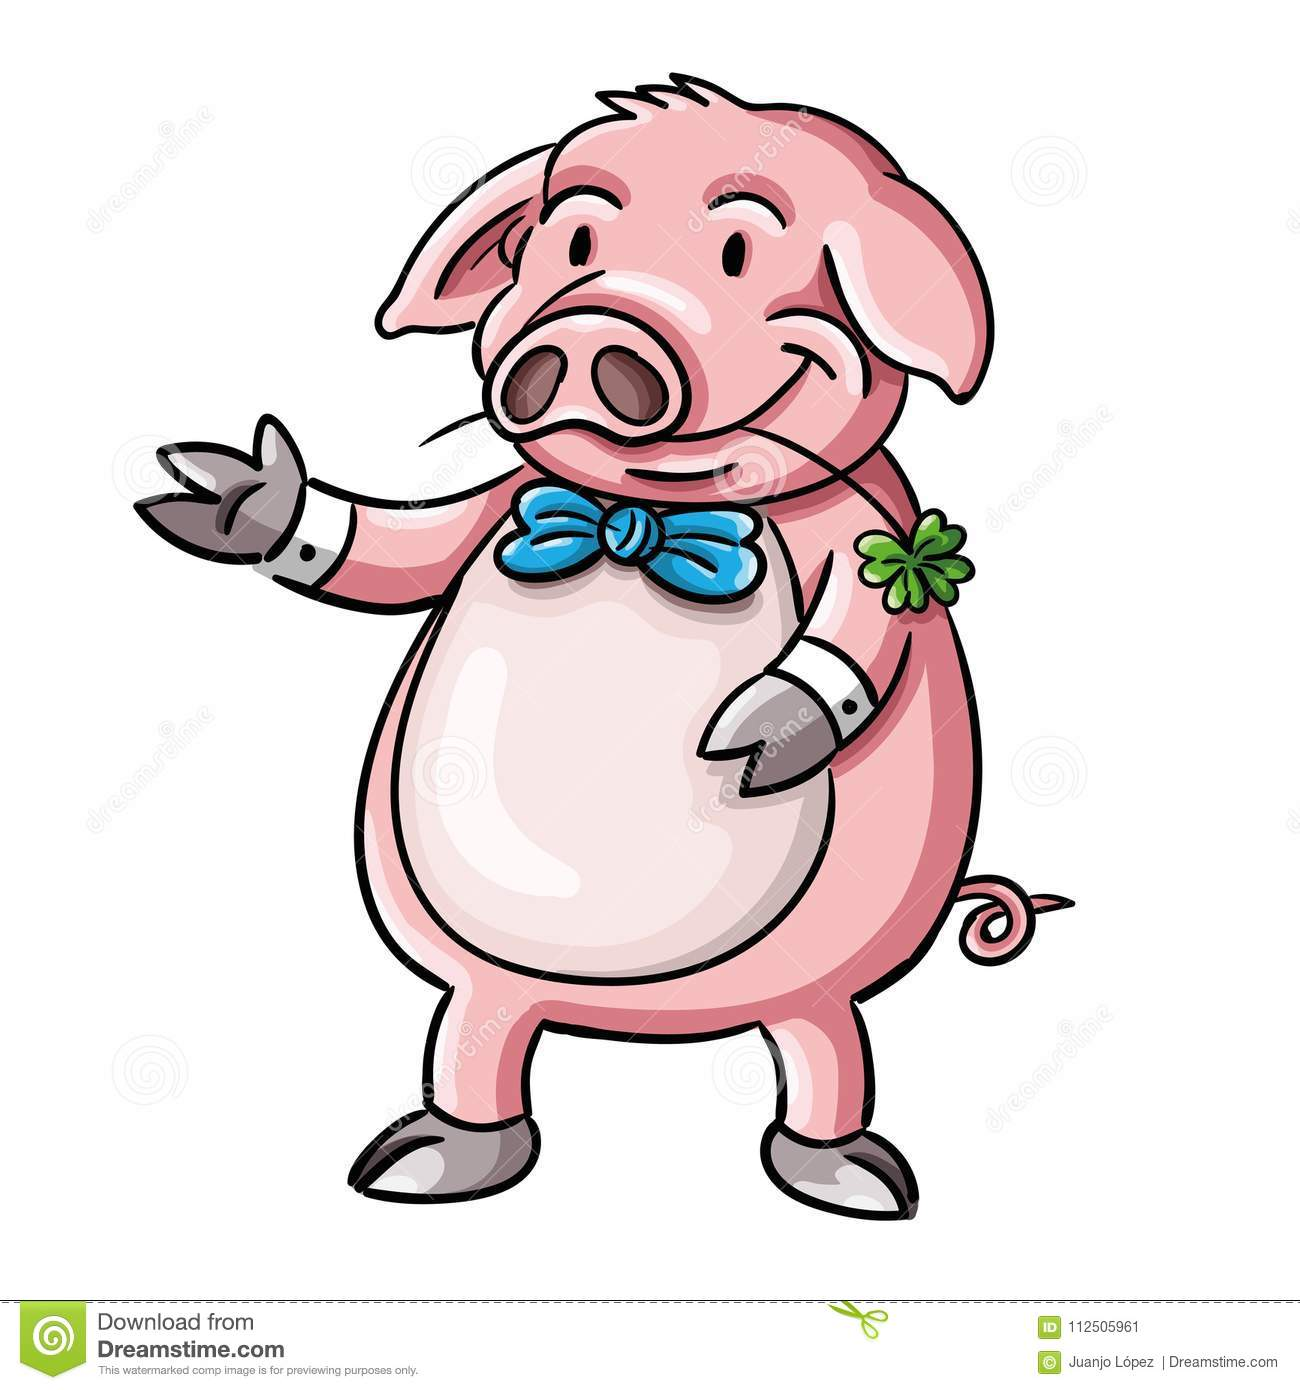 Funny Illustration Of Pig As A Symbol Of Good Luck Stock